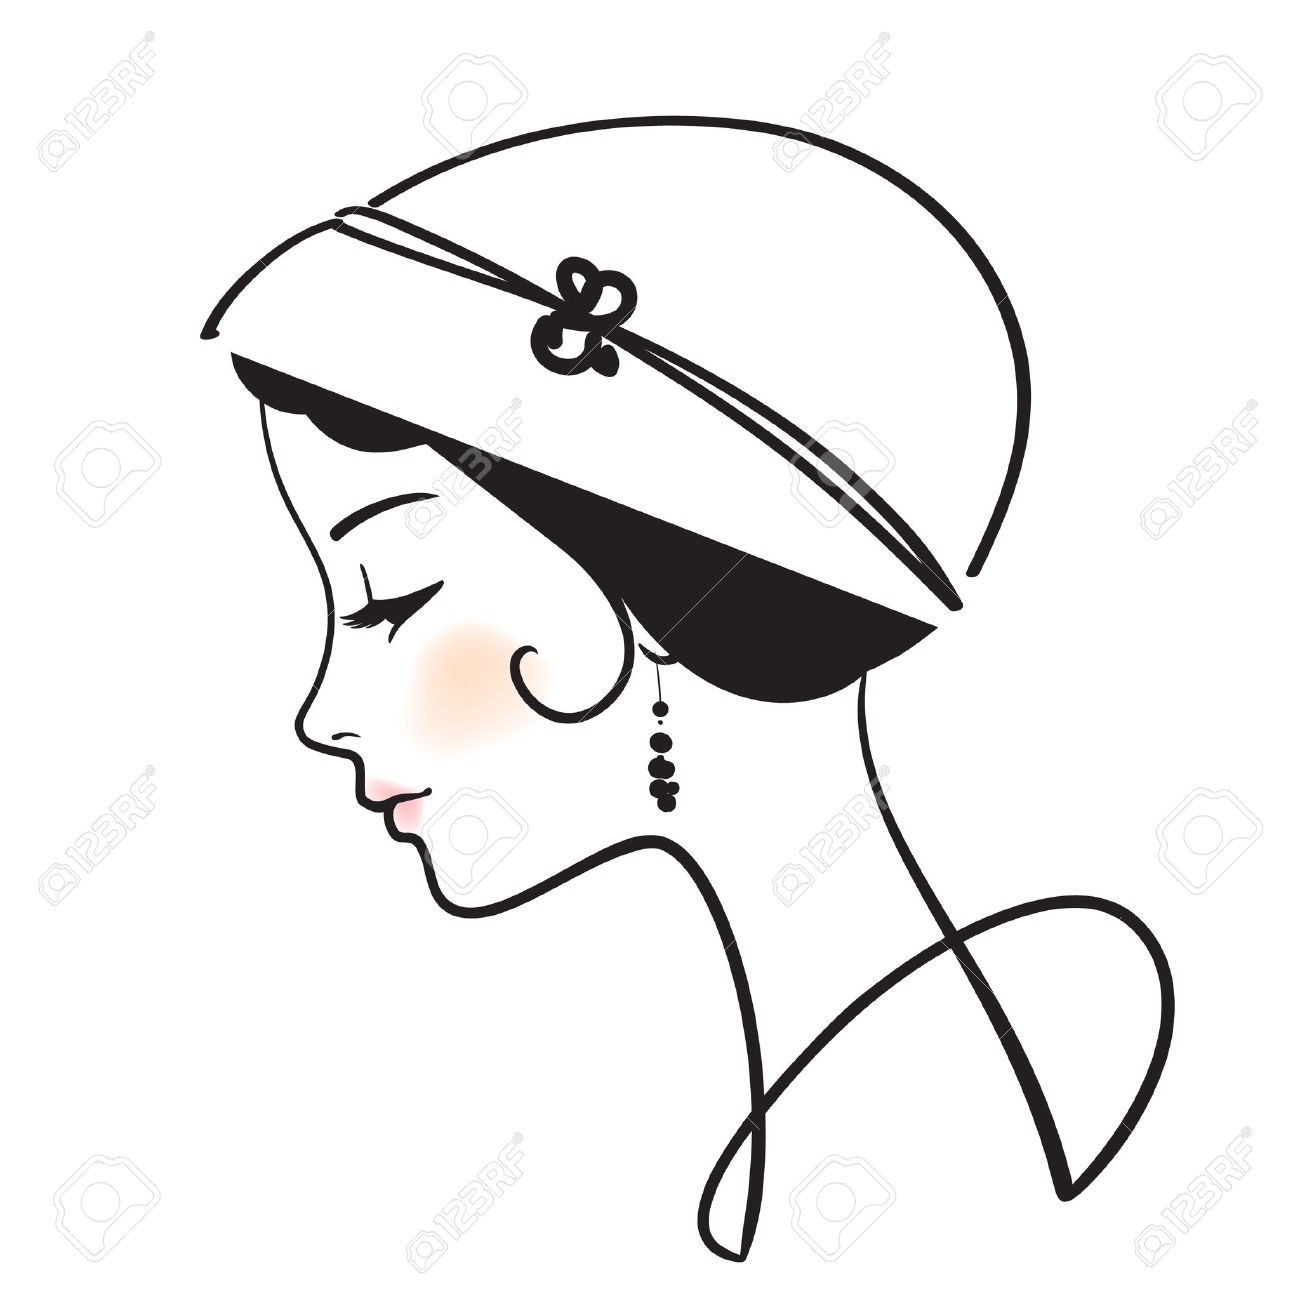 adcc61ba9d06db4c4a4ef4db1e38e9e3_beautiful-woman-face-with-hat-woman-in-hat-clipart_1300-1300